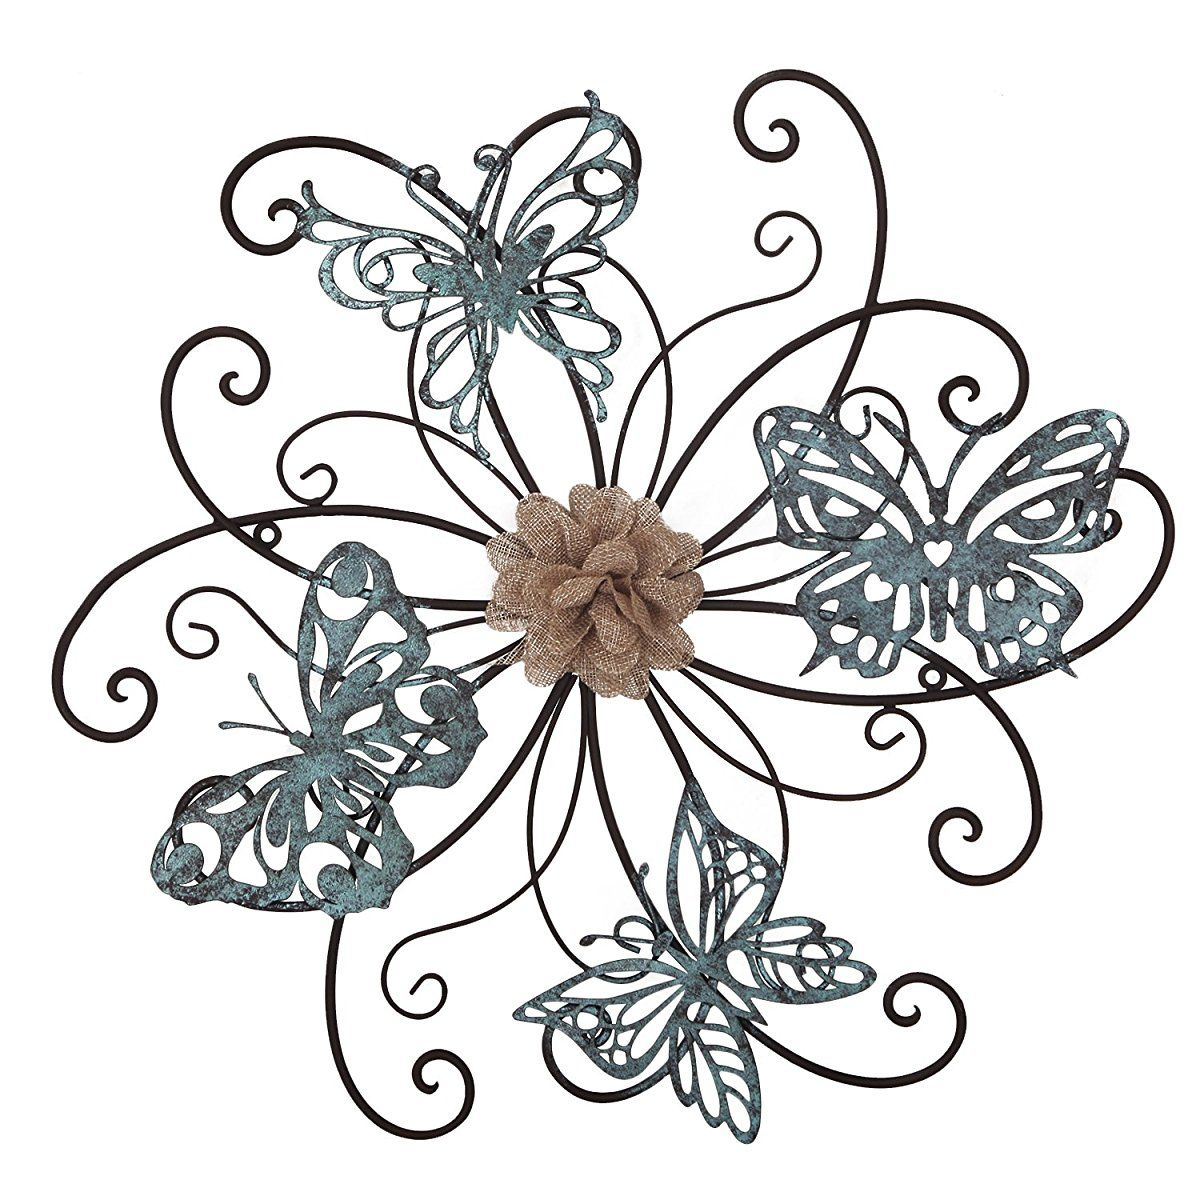 Homes Art Flower And Butterfly Urban Design Metal Wall Decor With Flower And Butterfly Urban Design Metal Wall Decor (View 4 of 30)